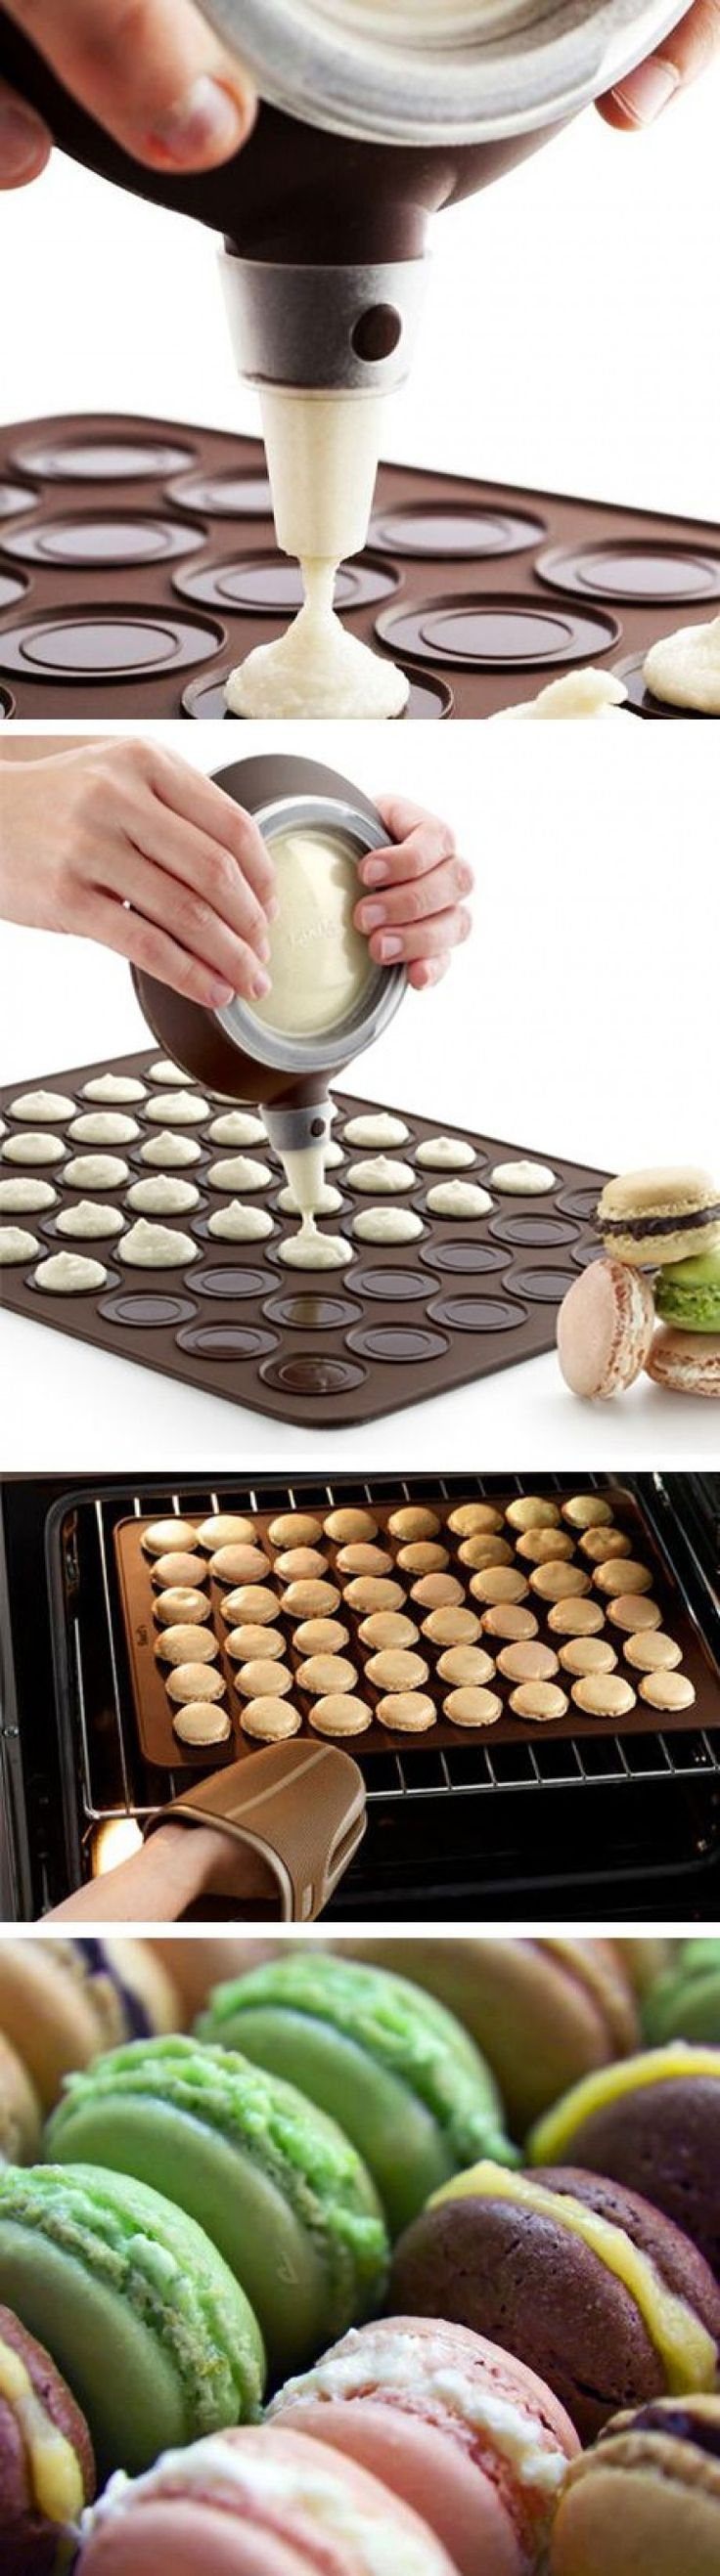 55 best macaroons images on Pinterest